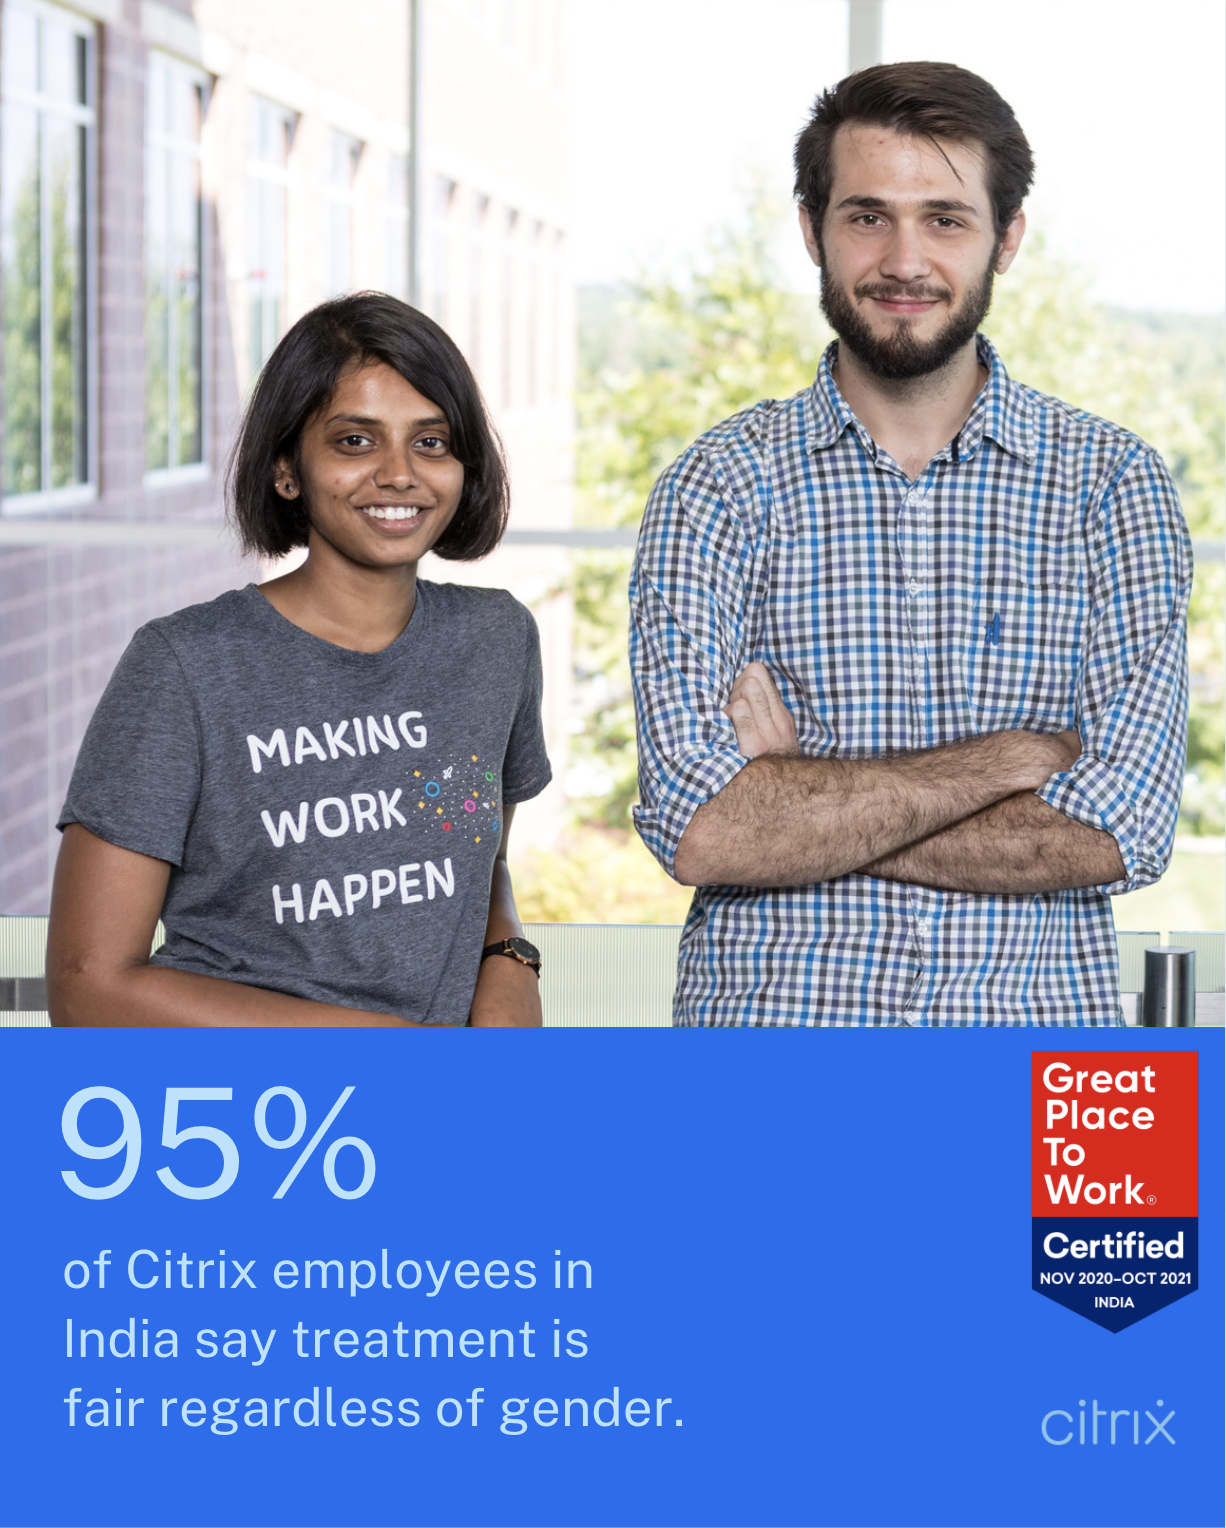 95% of Citrix employees in India say treatment is fair regardless of gender